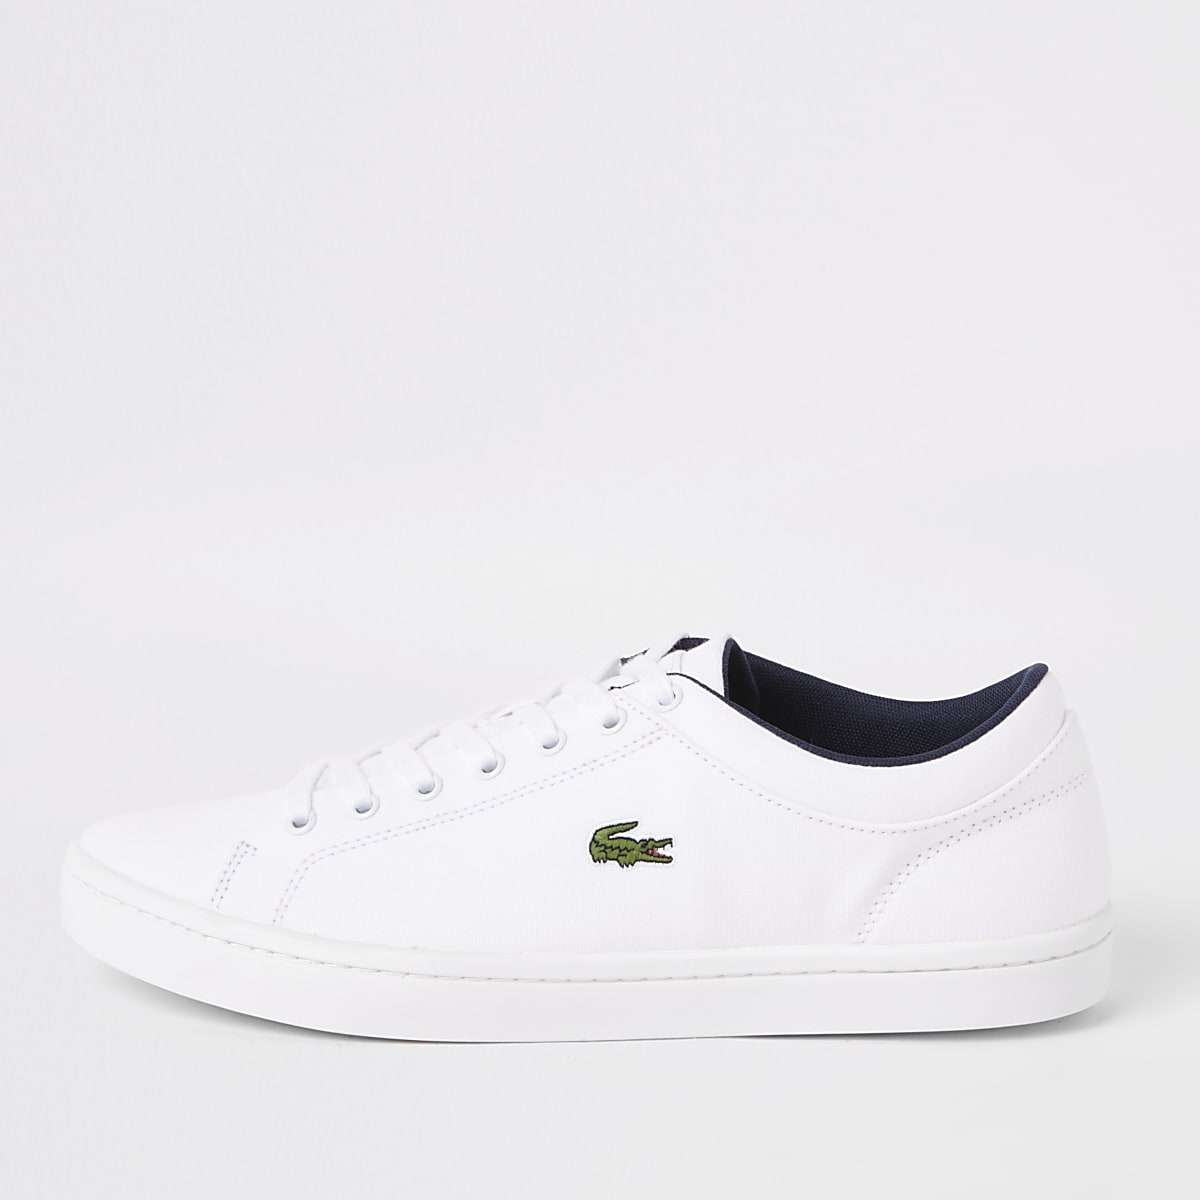 Lacoste Straightset white trainers